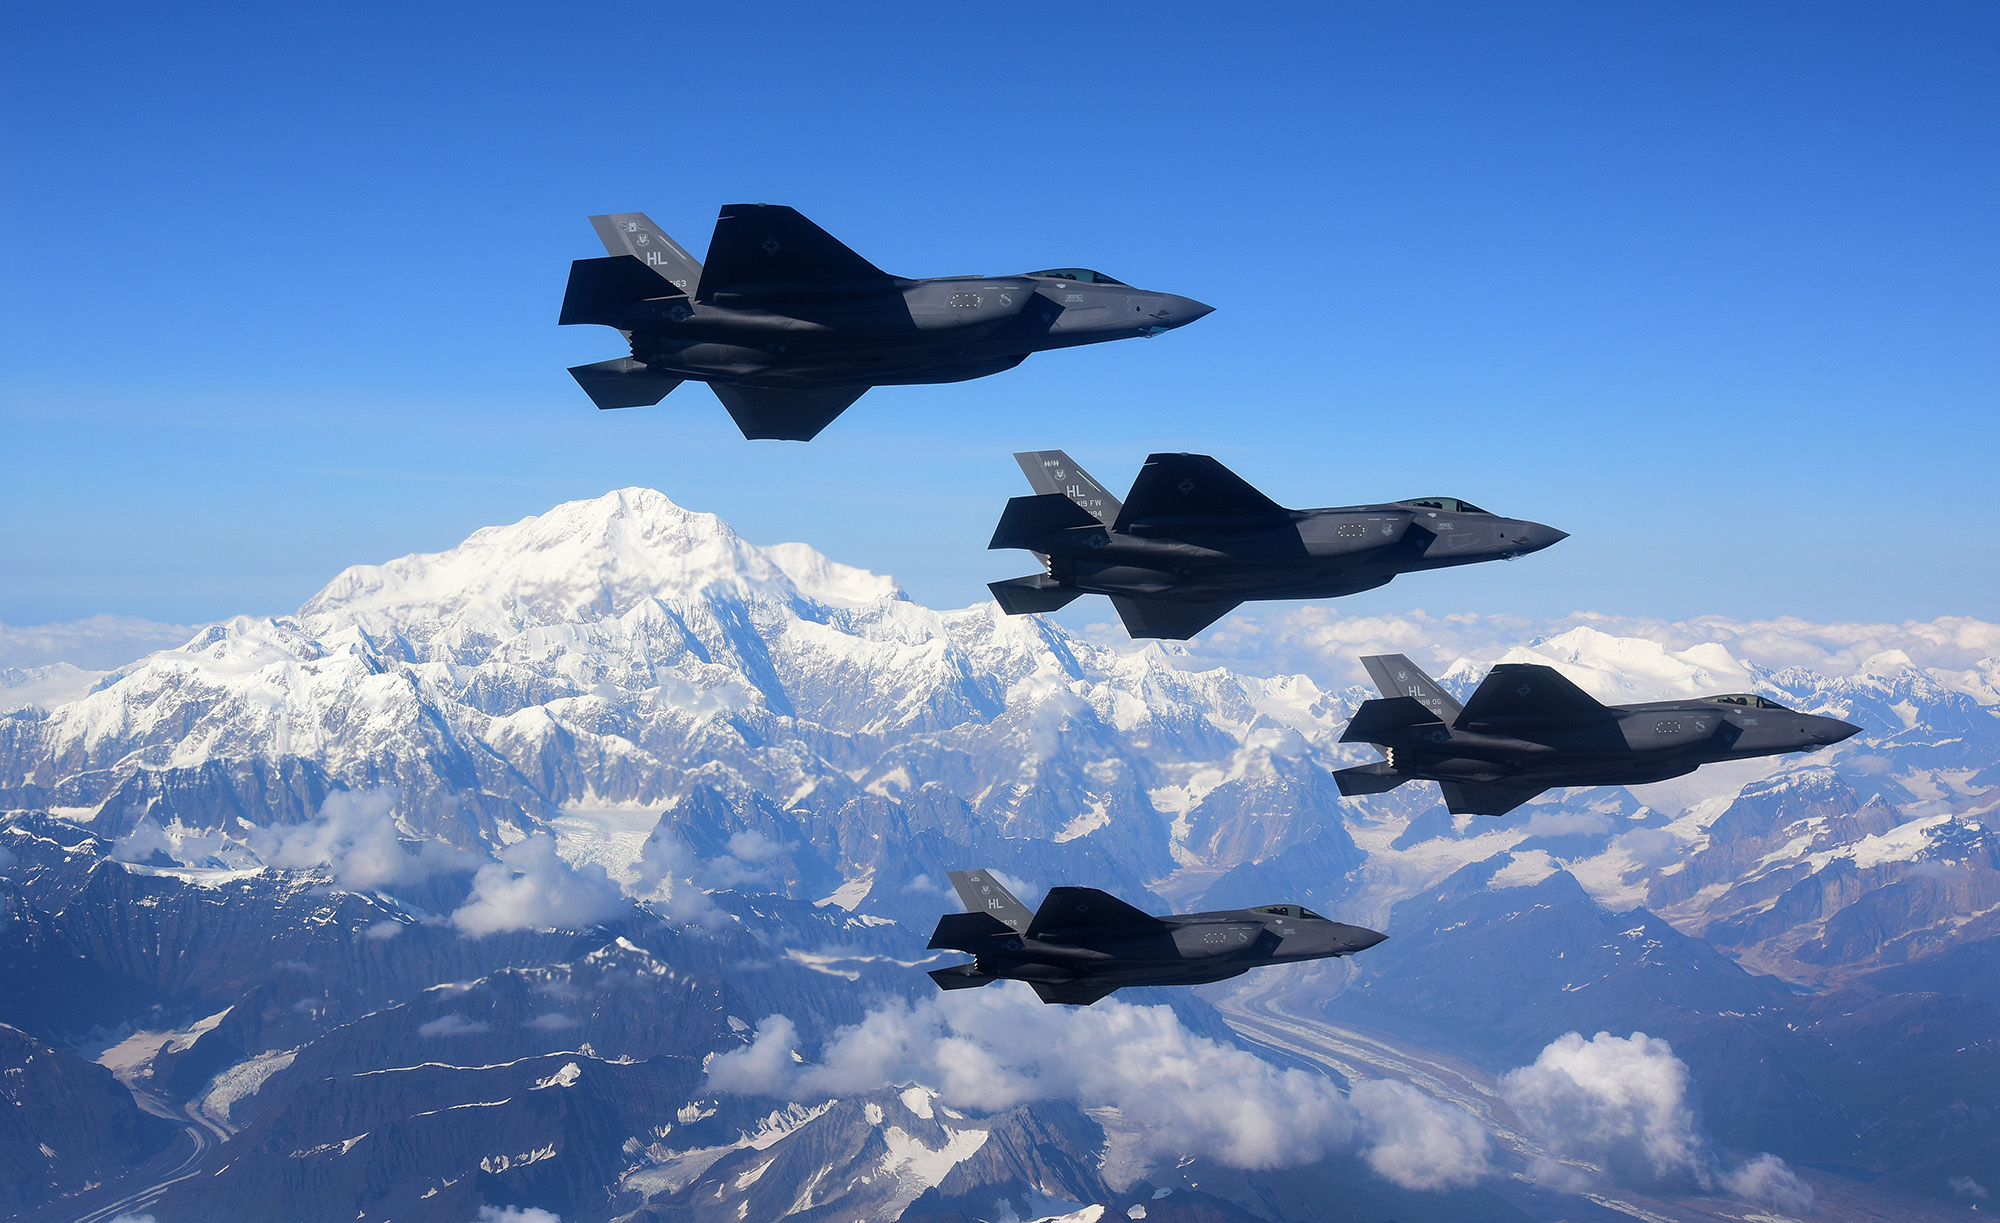 Four F-35A Lightning IIs fly in formation over Denali National Park, Alaska, Aug. 17, 2020. (Tech. Sgt. Jerilyn Quintanilla/Air Force)